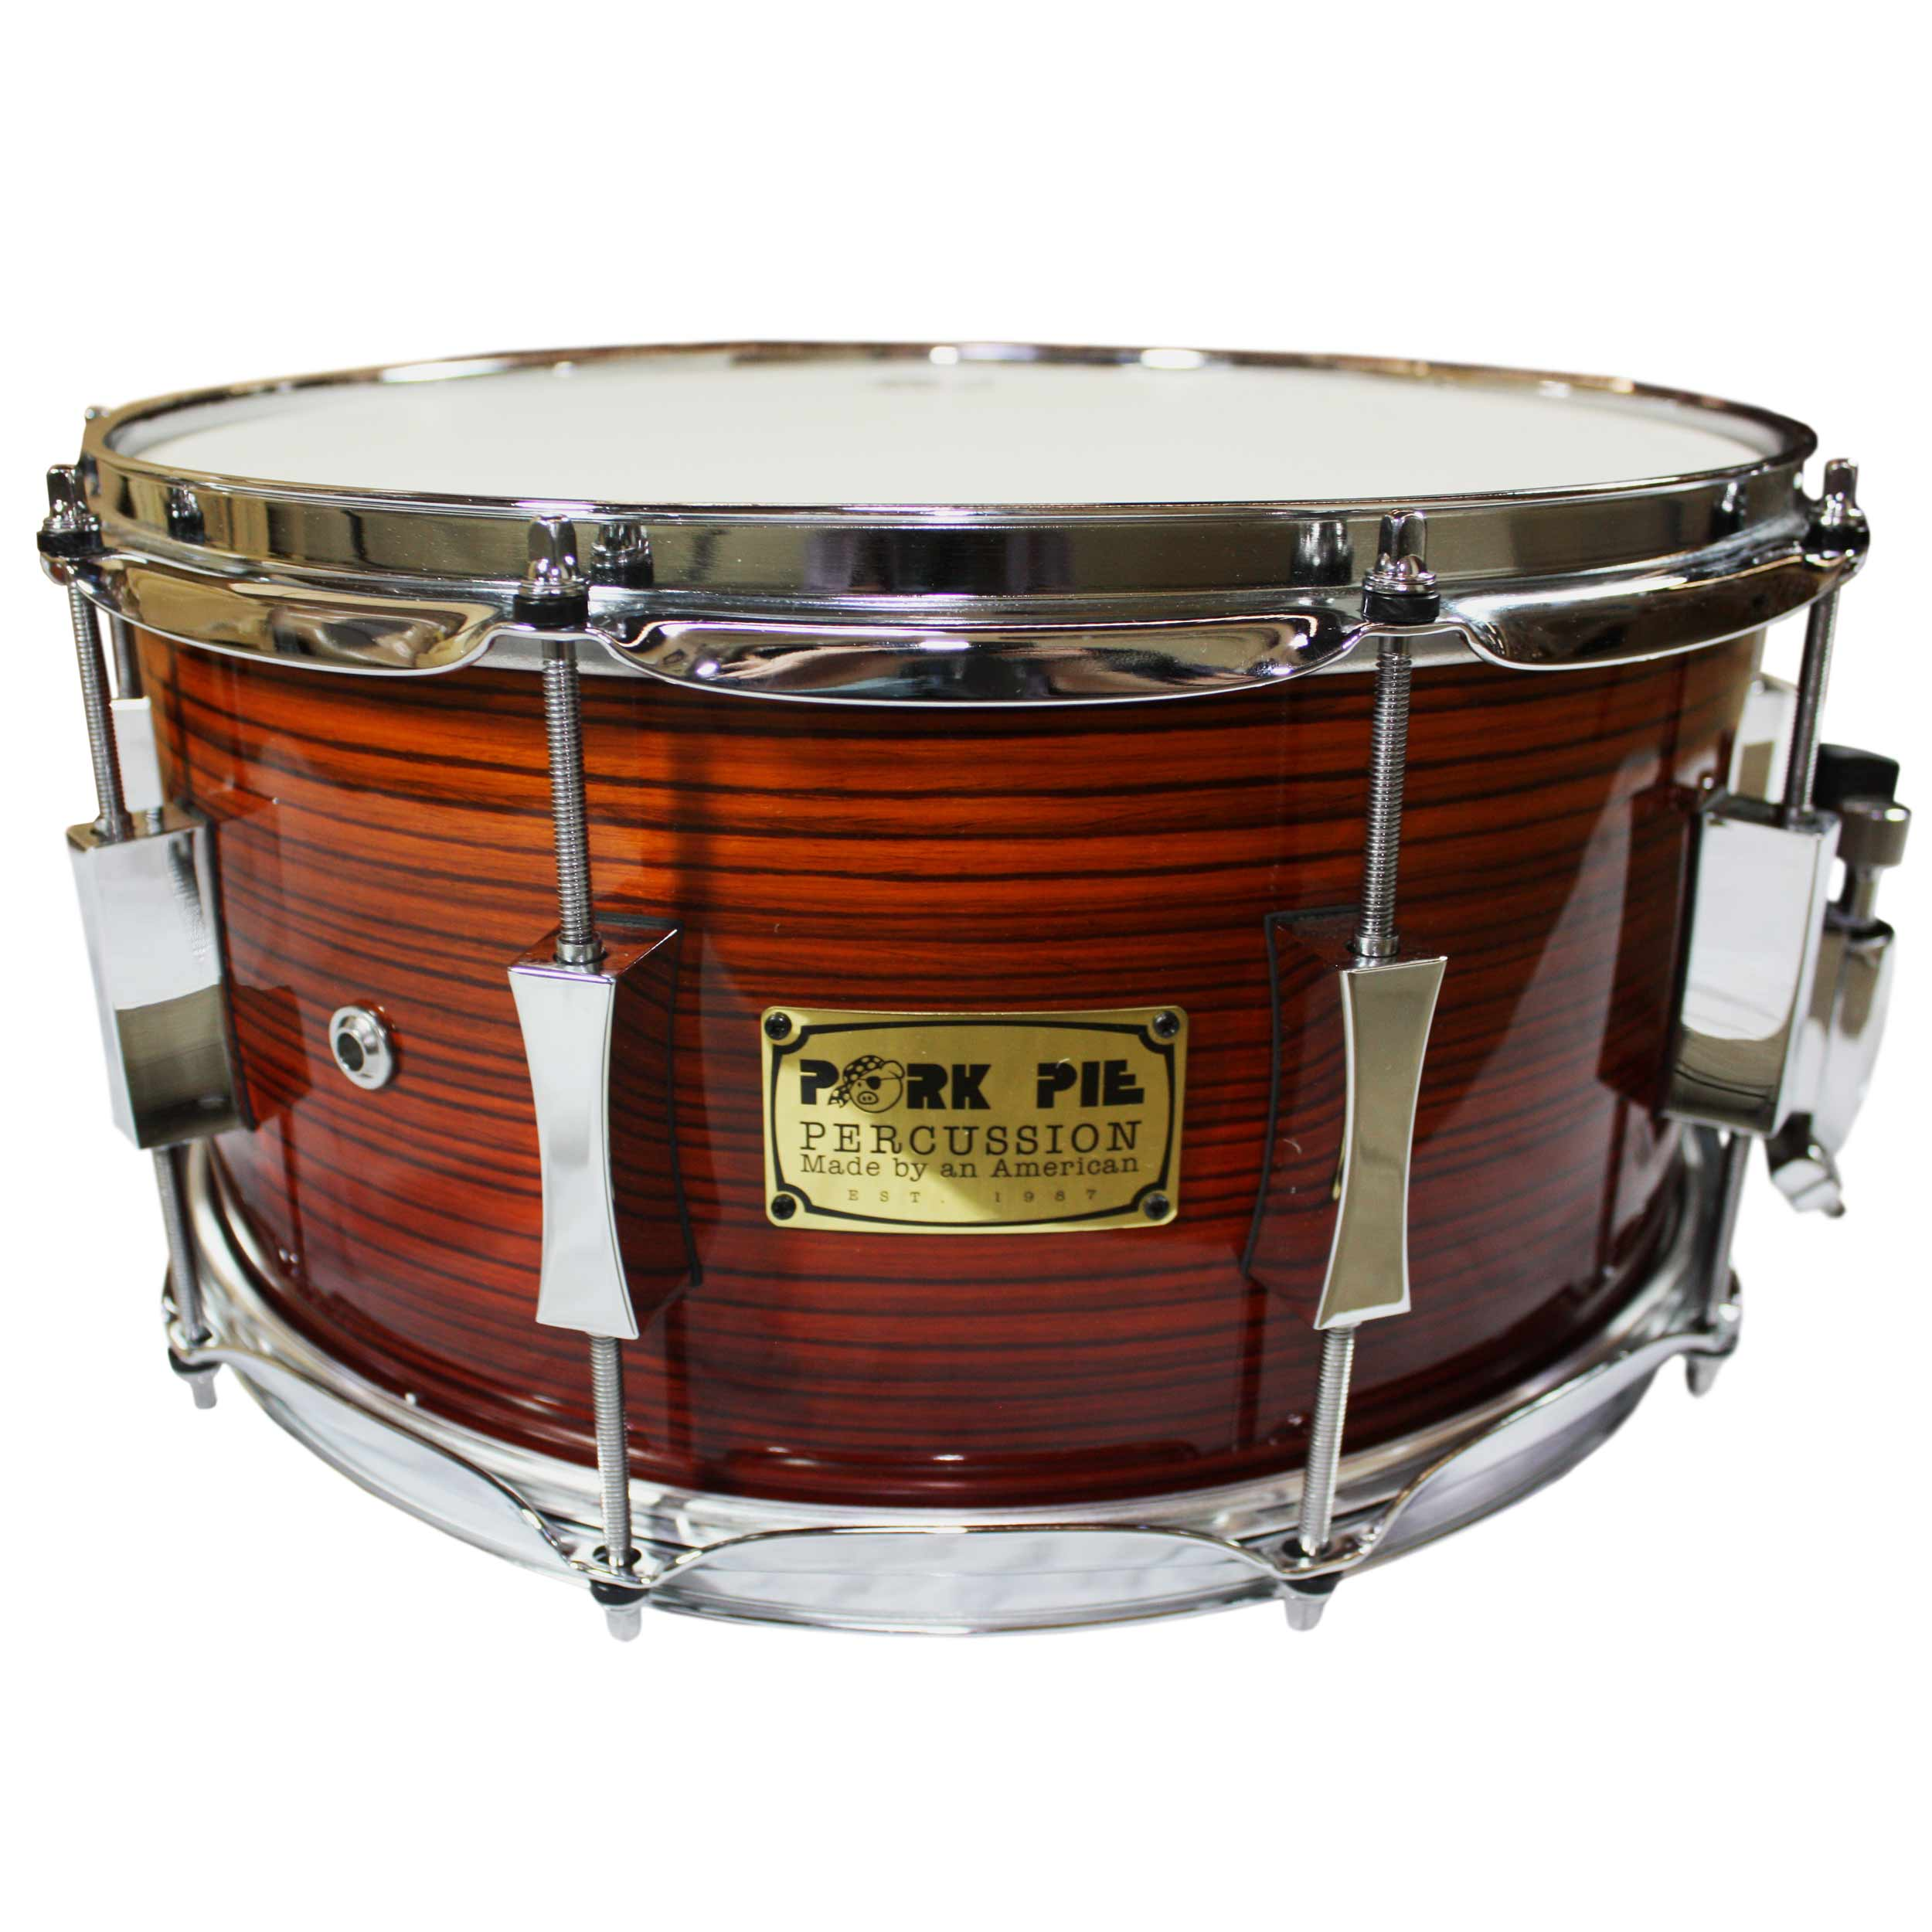 "Pork Pie 7"" x 14"" Zebra Wood Custom Snare Drum"